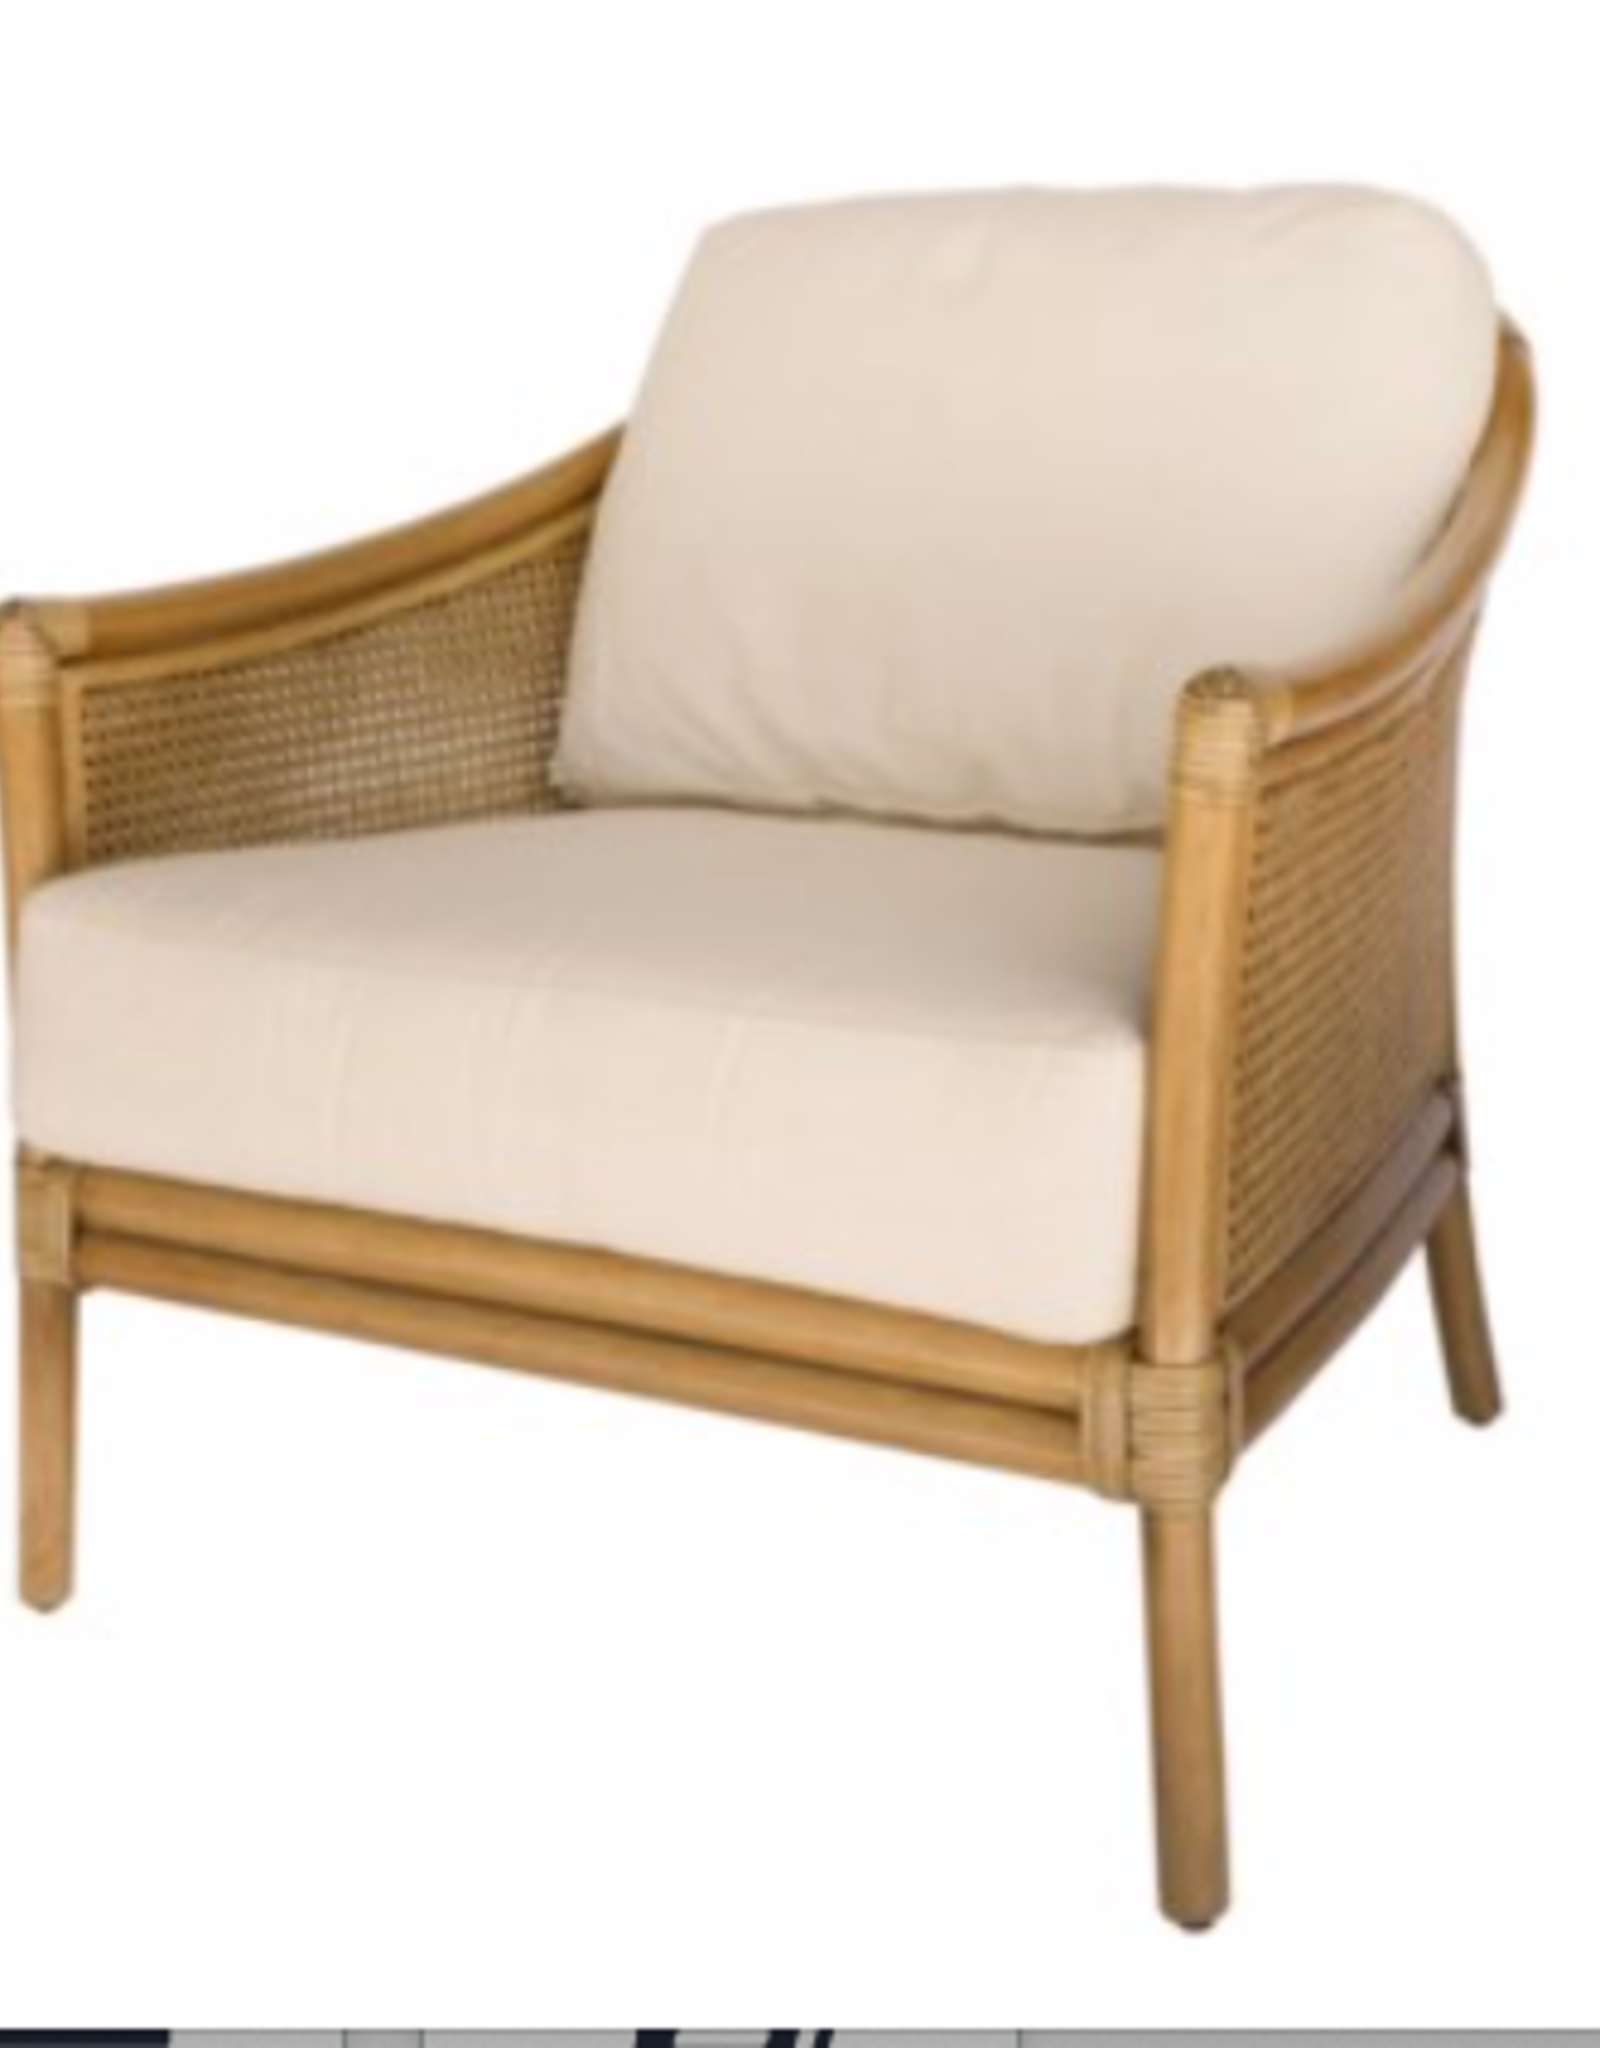 Tivoli Lounge Chair in Nutmeg